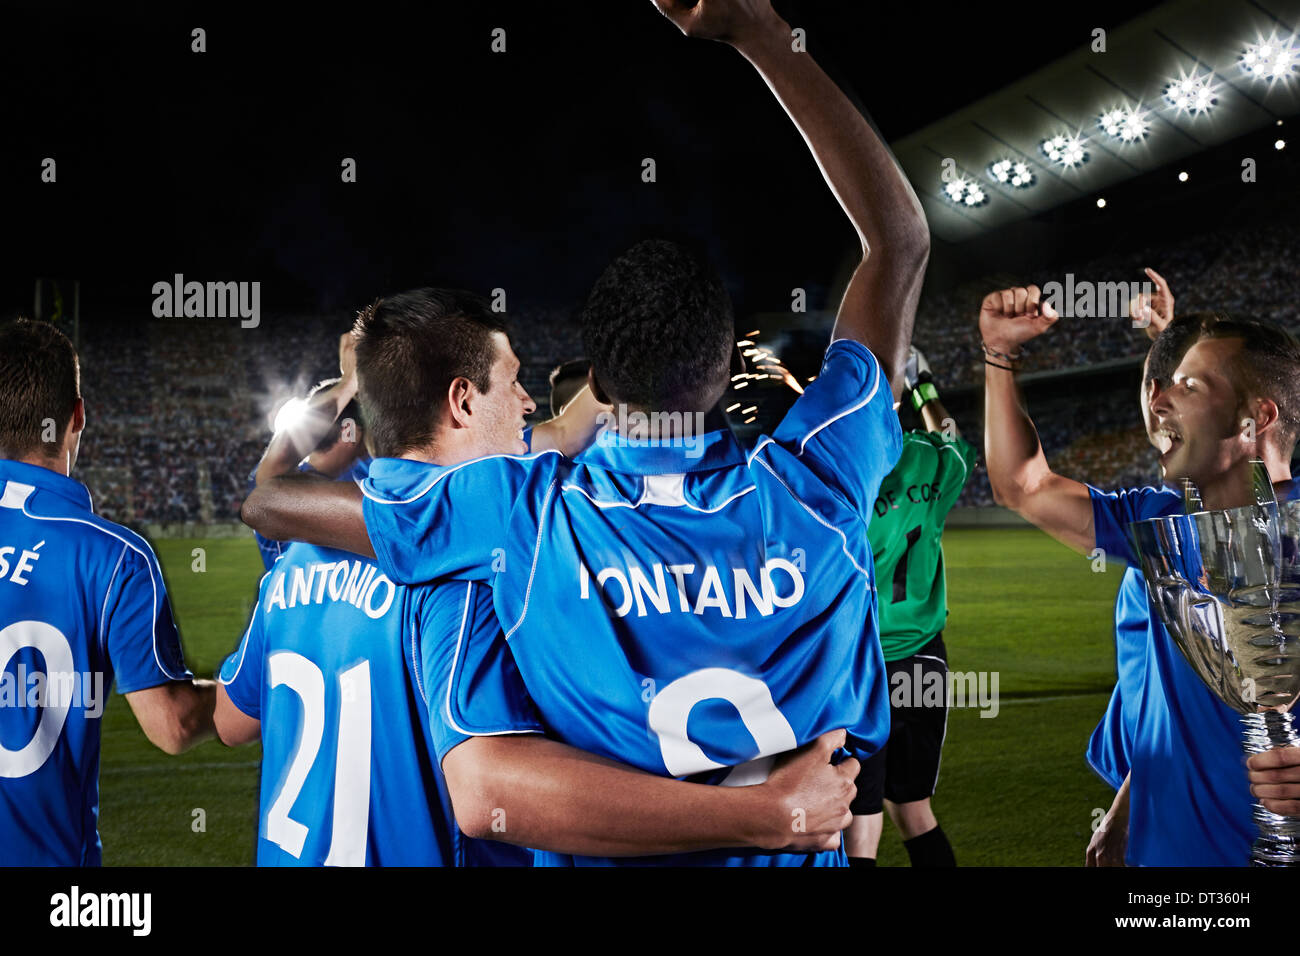 Soccer team cheering on field - Stock Image